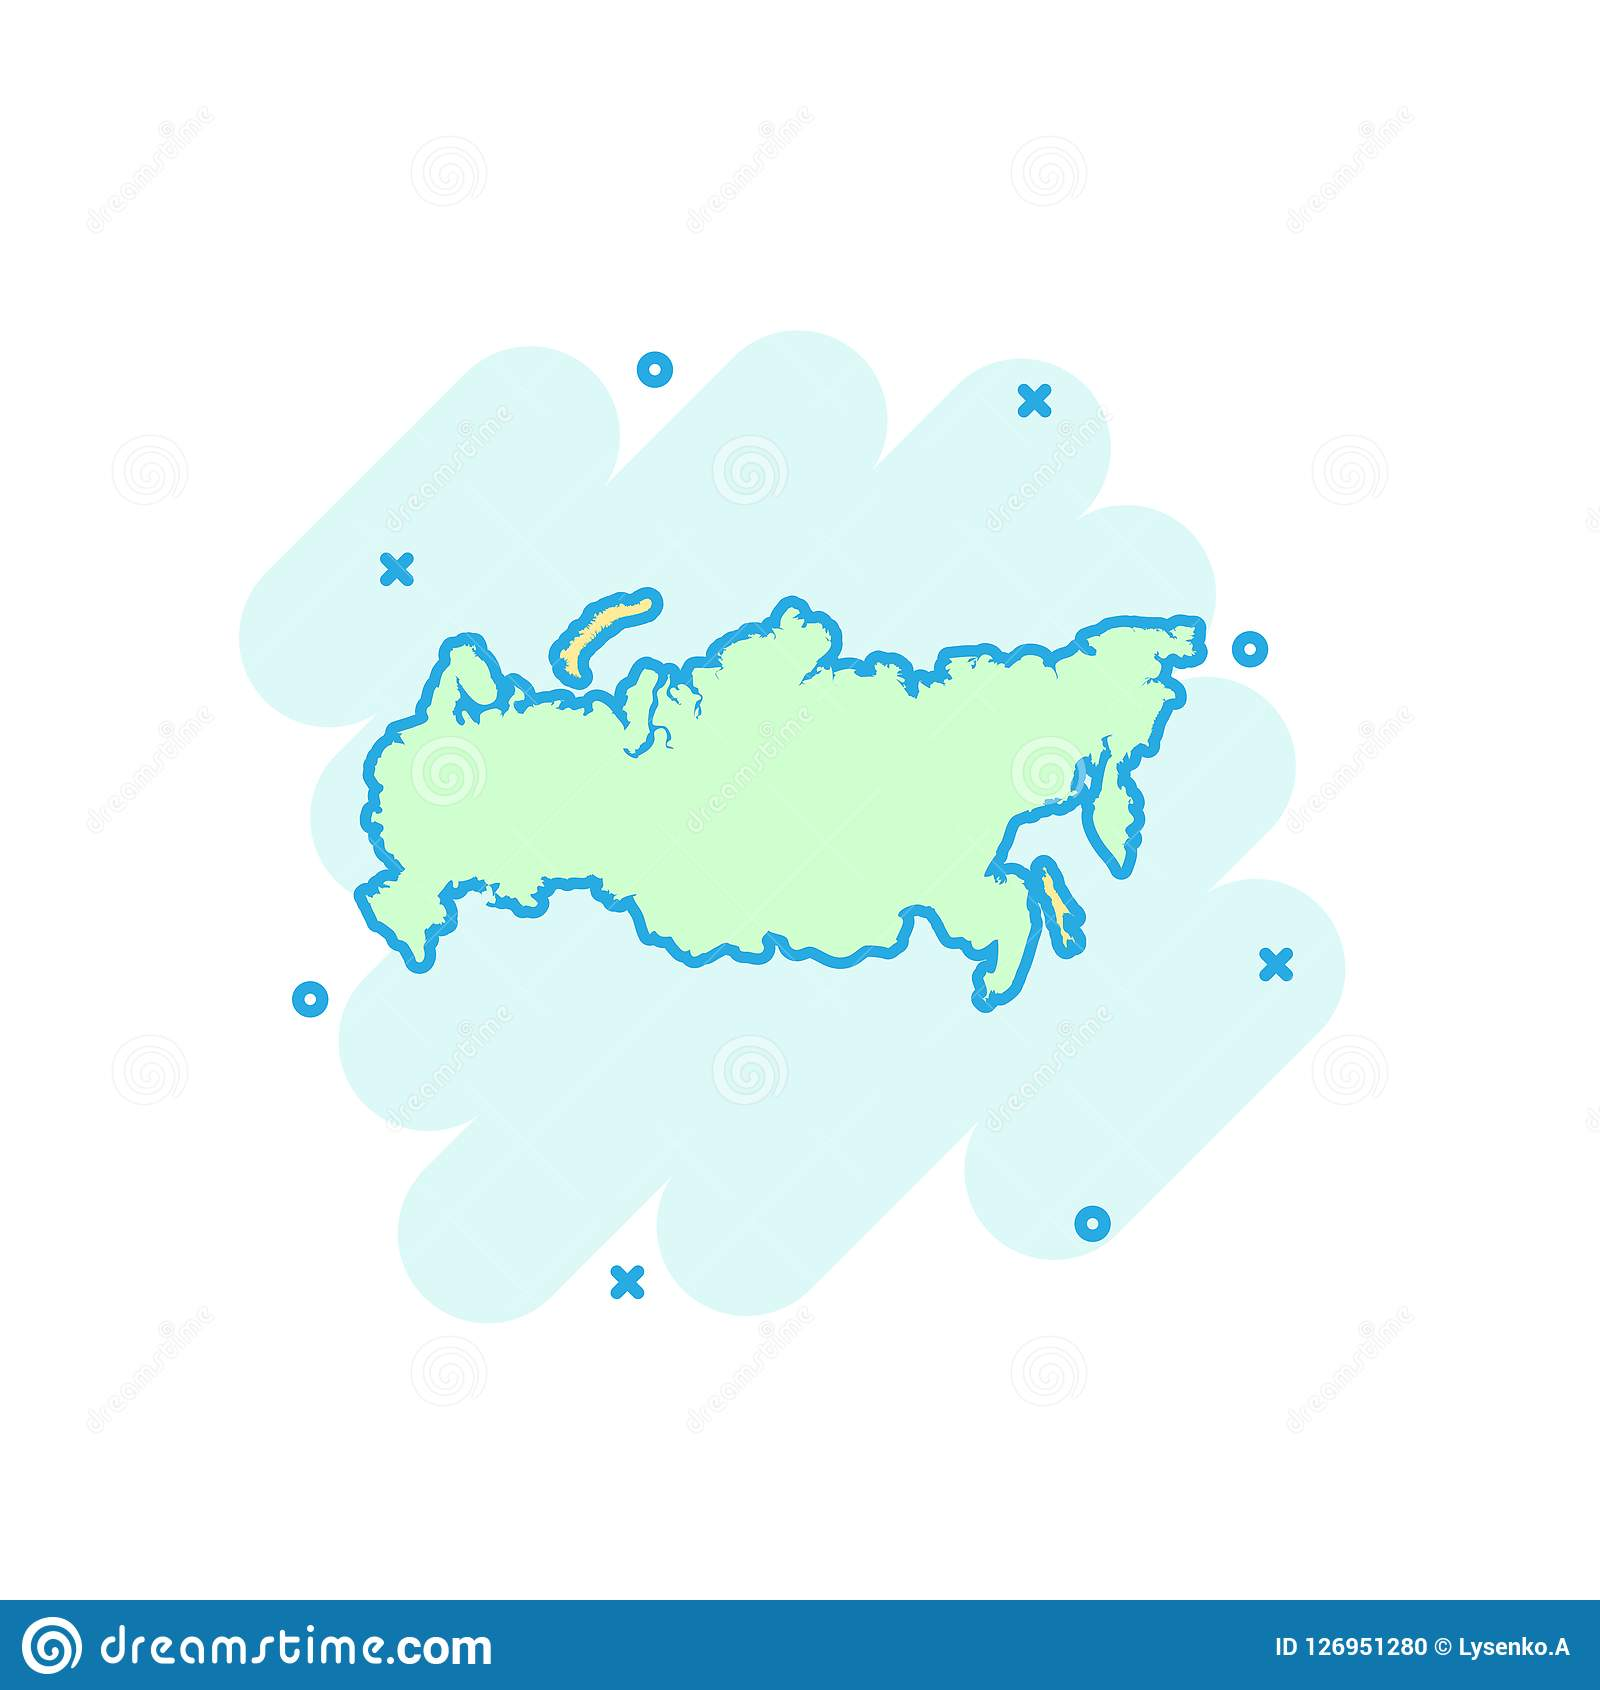 Cartoon colored Russia map icon in comic style. Russian Federation sign illustration pictogram. Country geography splash business